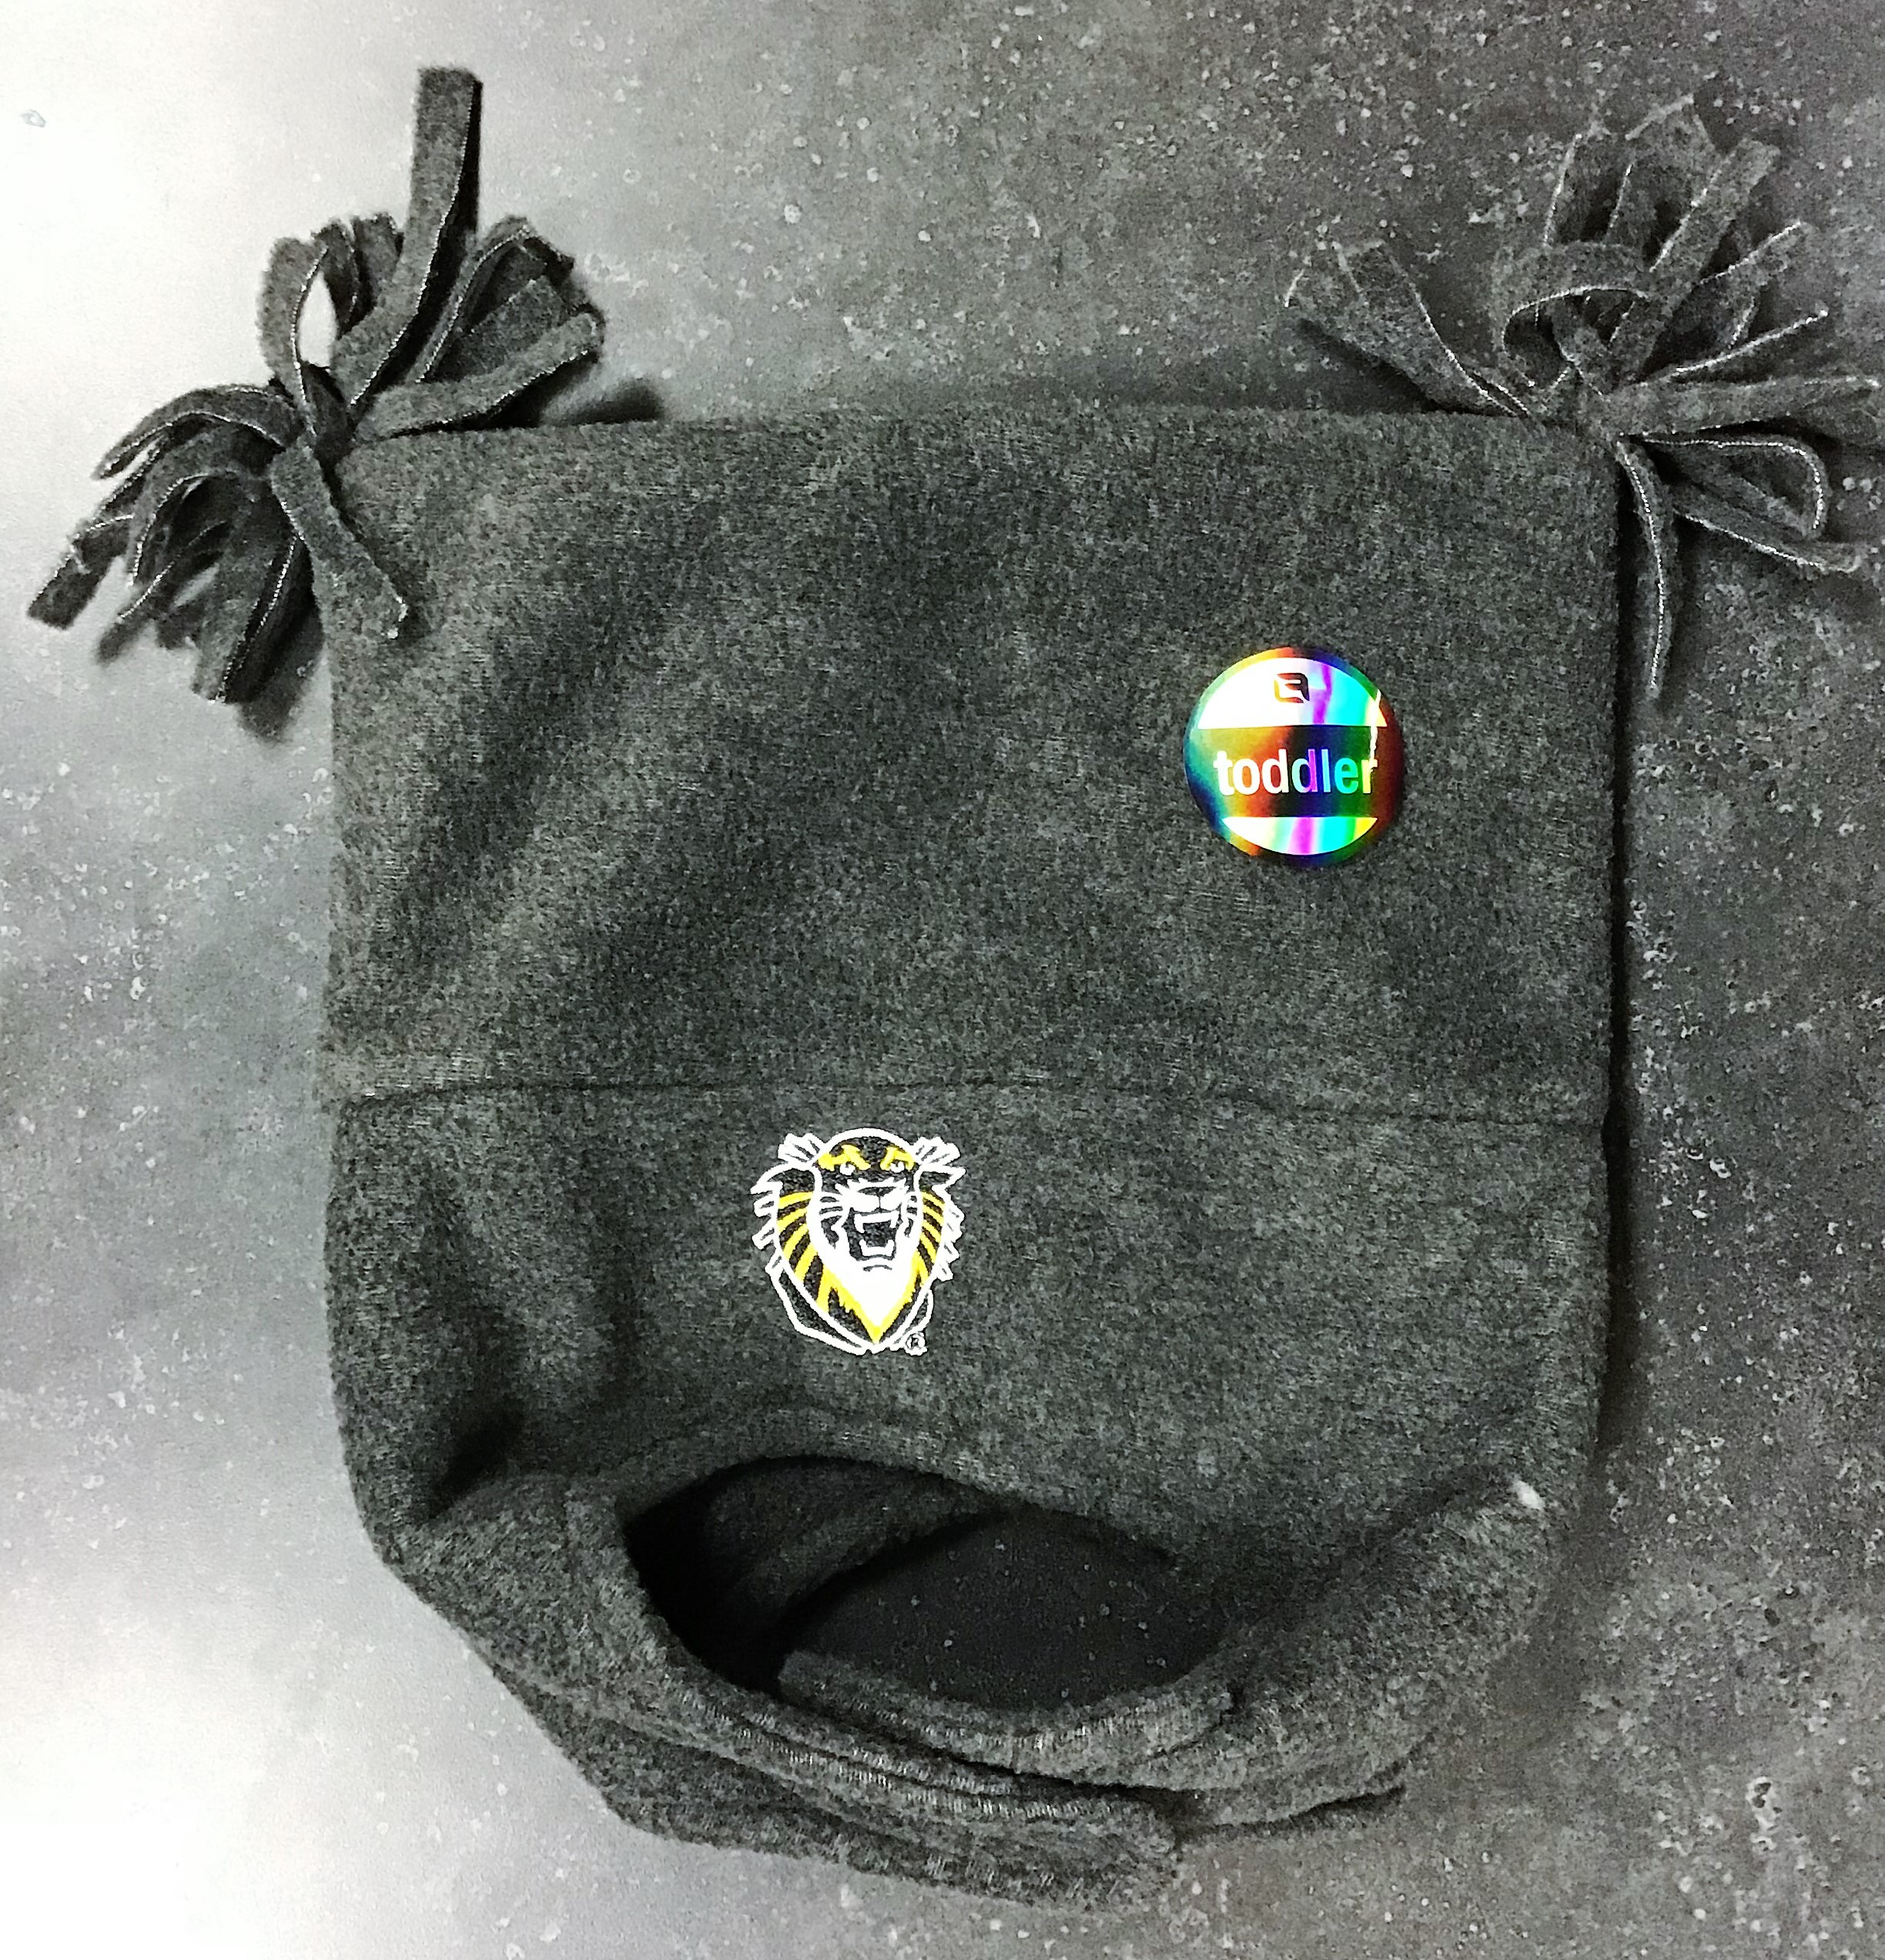 Image for the Fleece Cap + Chinstrap, Toddler, Gray, Logofit 4864 product